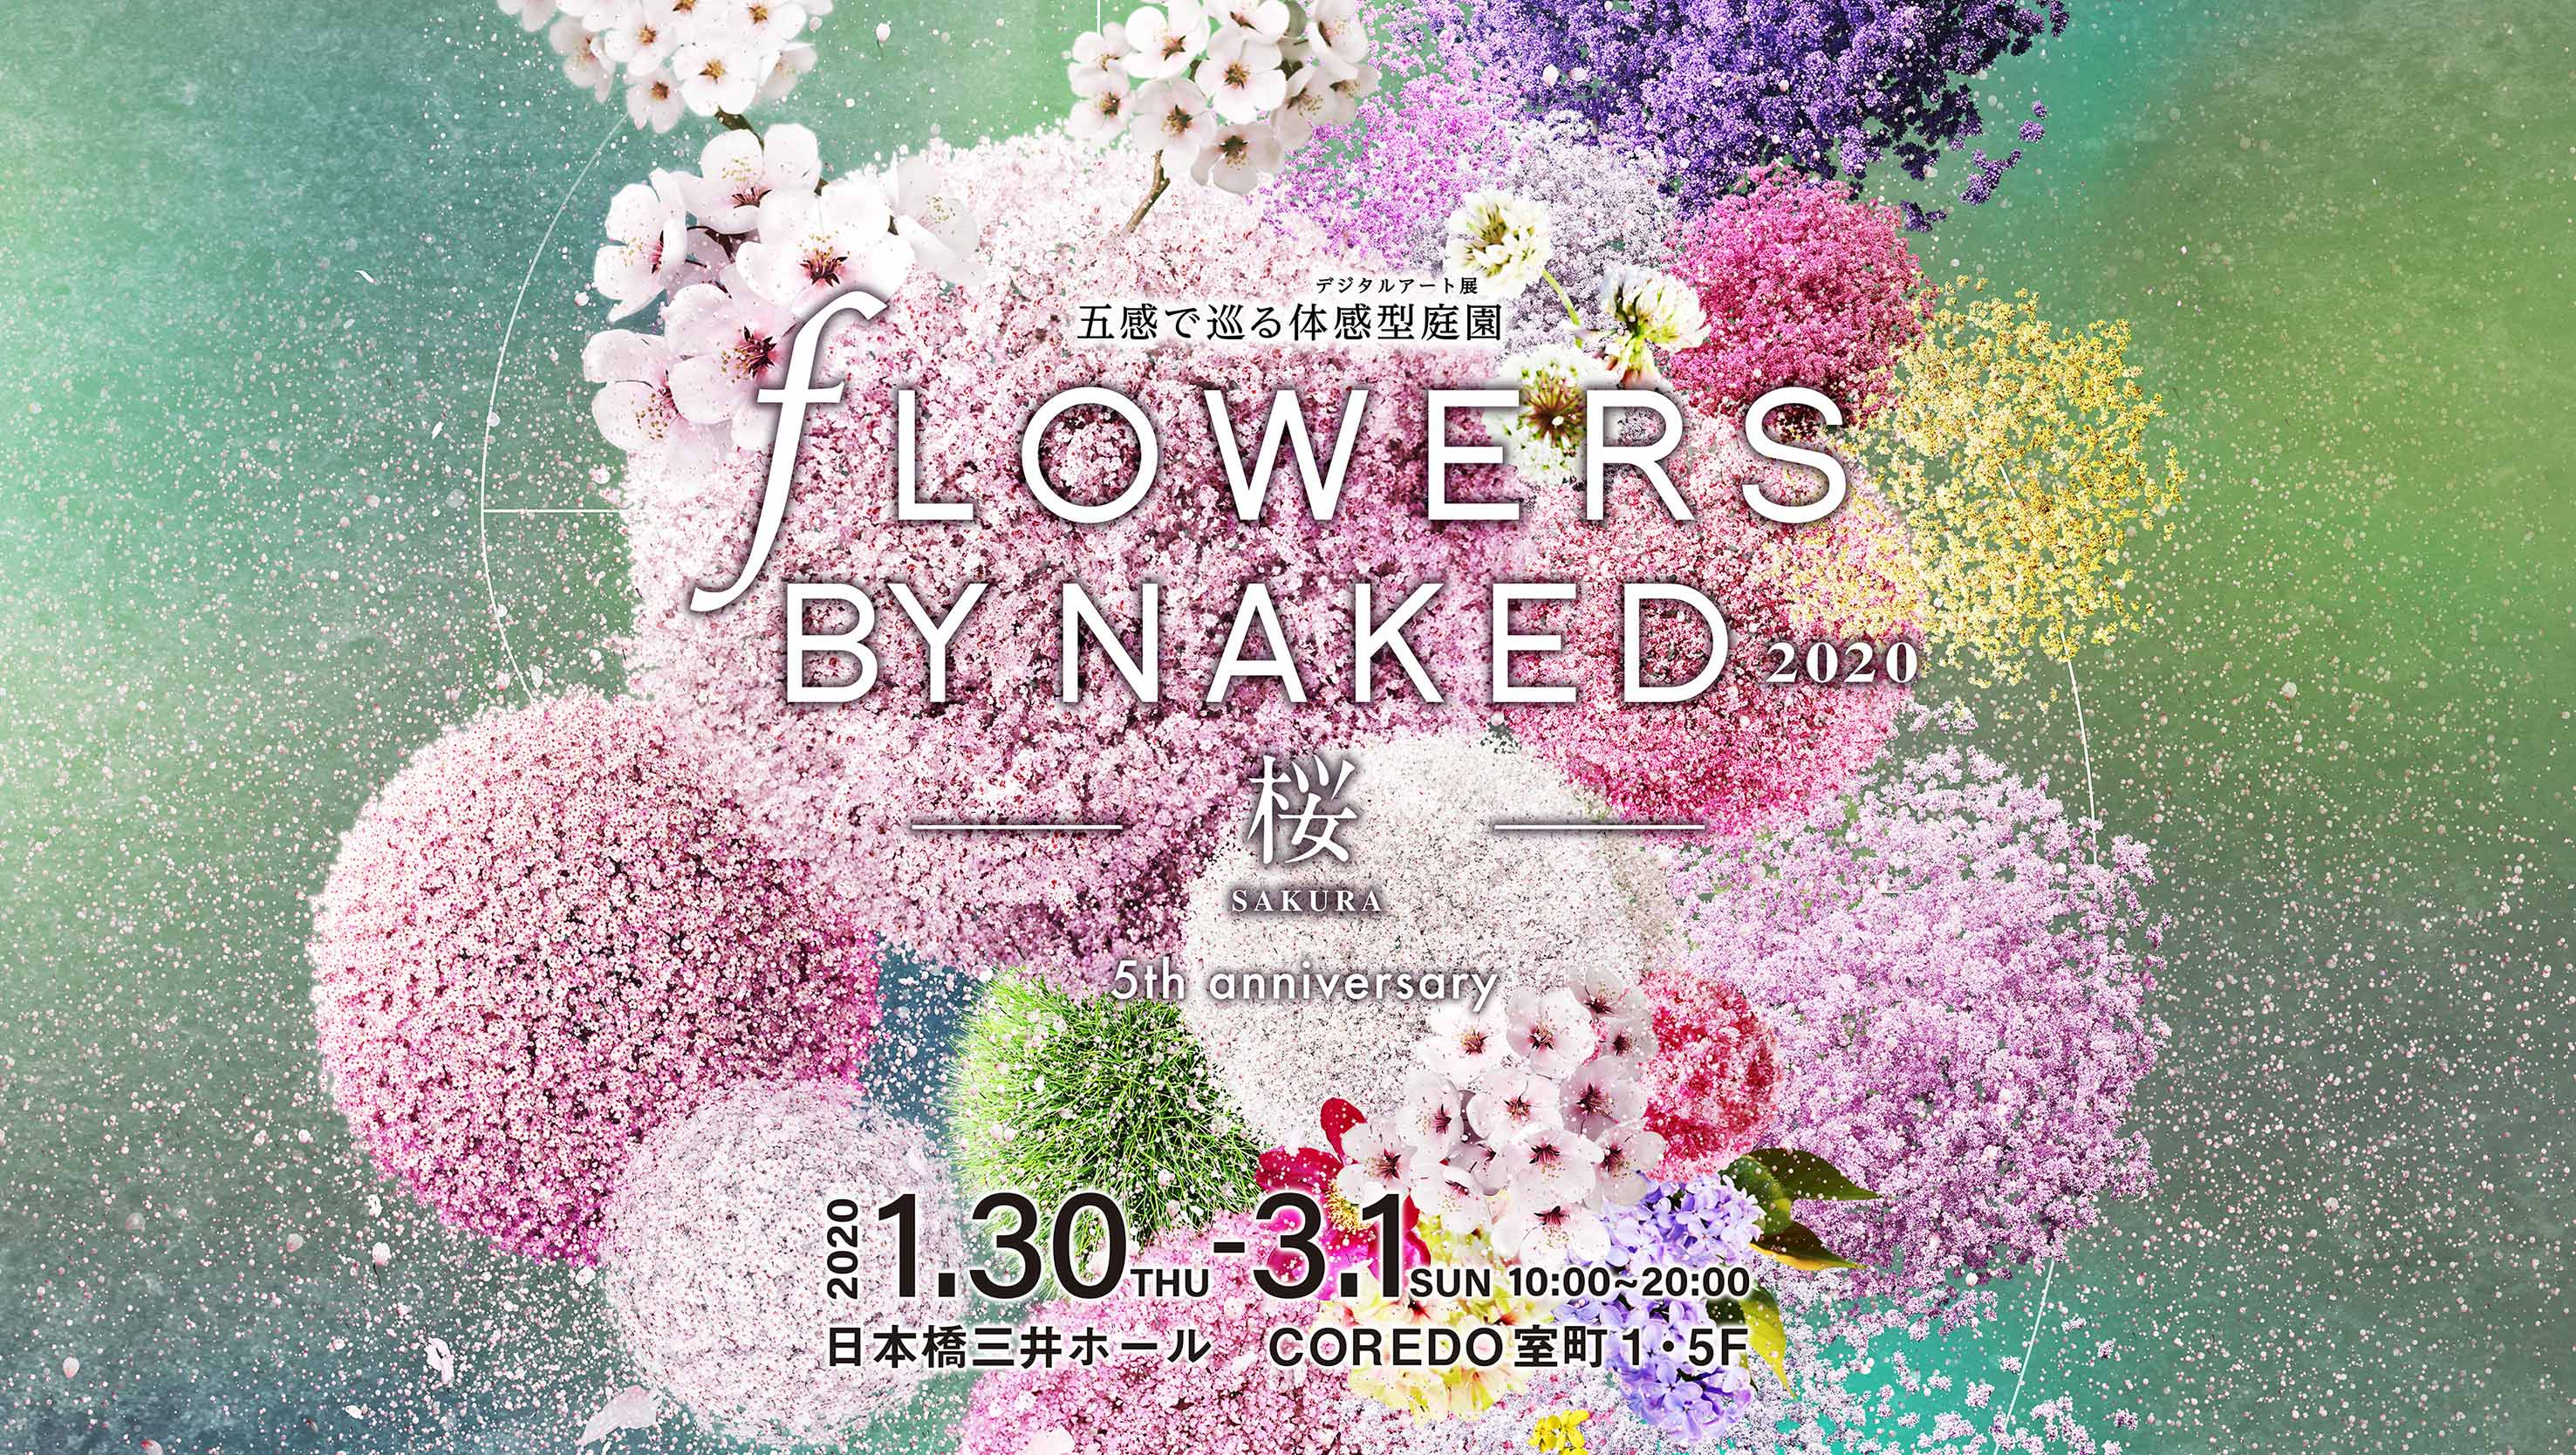 FLOWERS BY NAKED 2020 ー桜ー